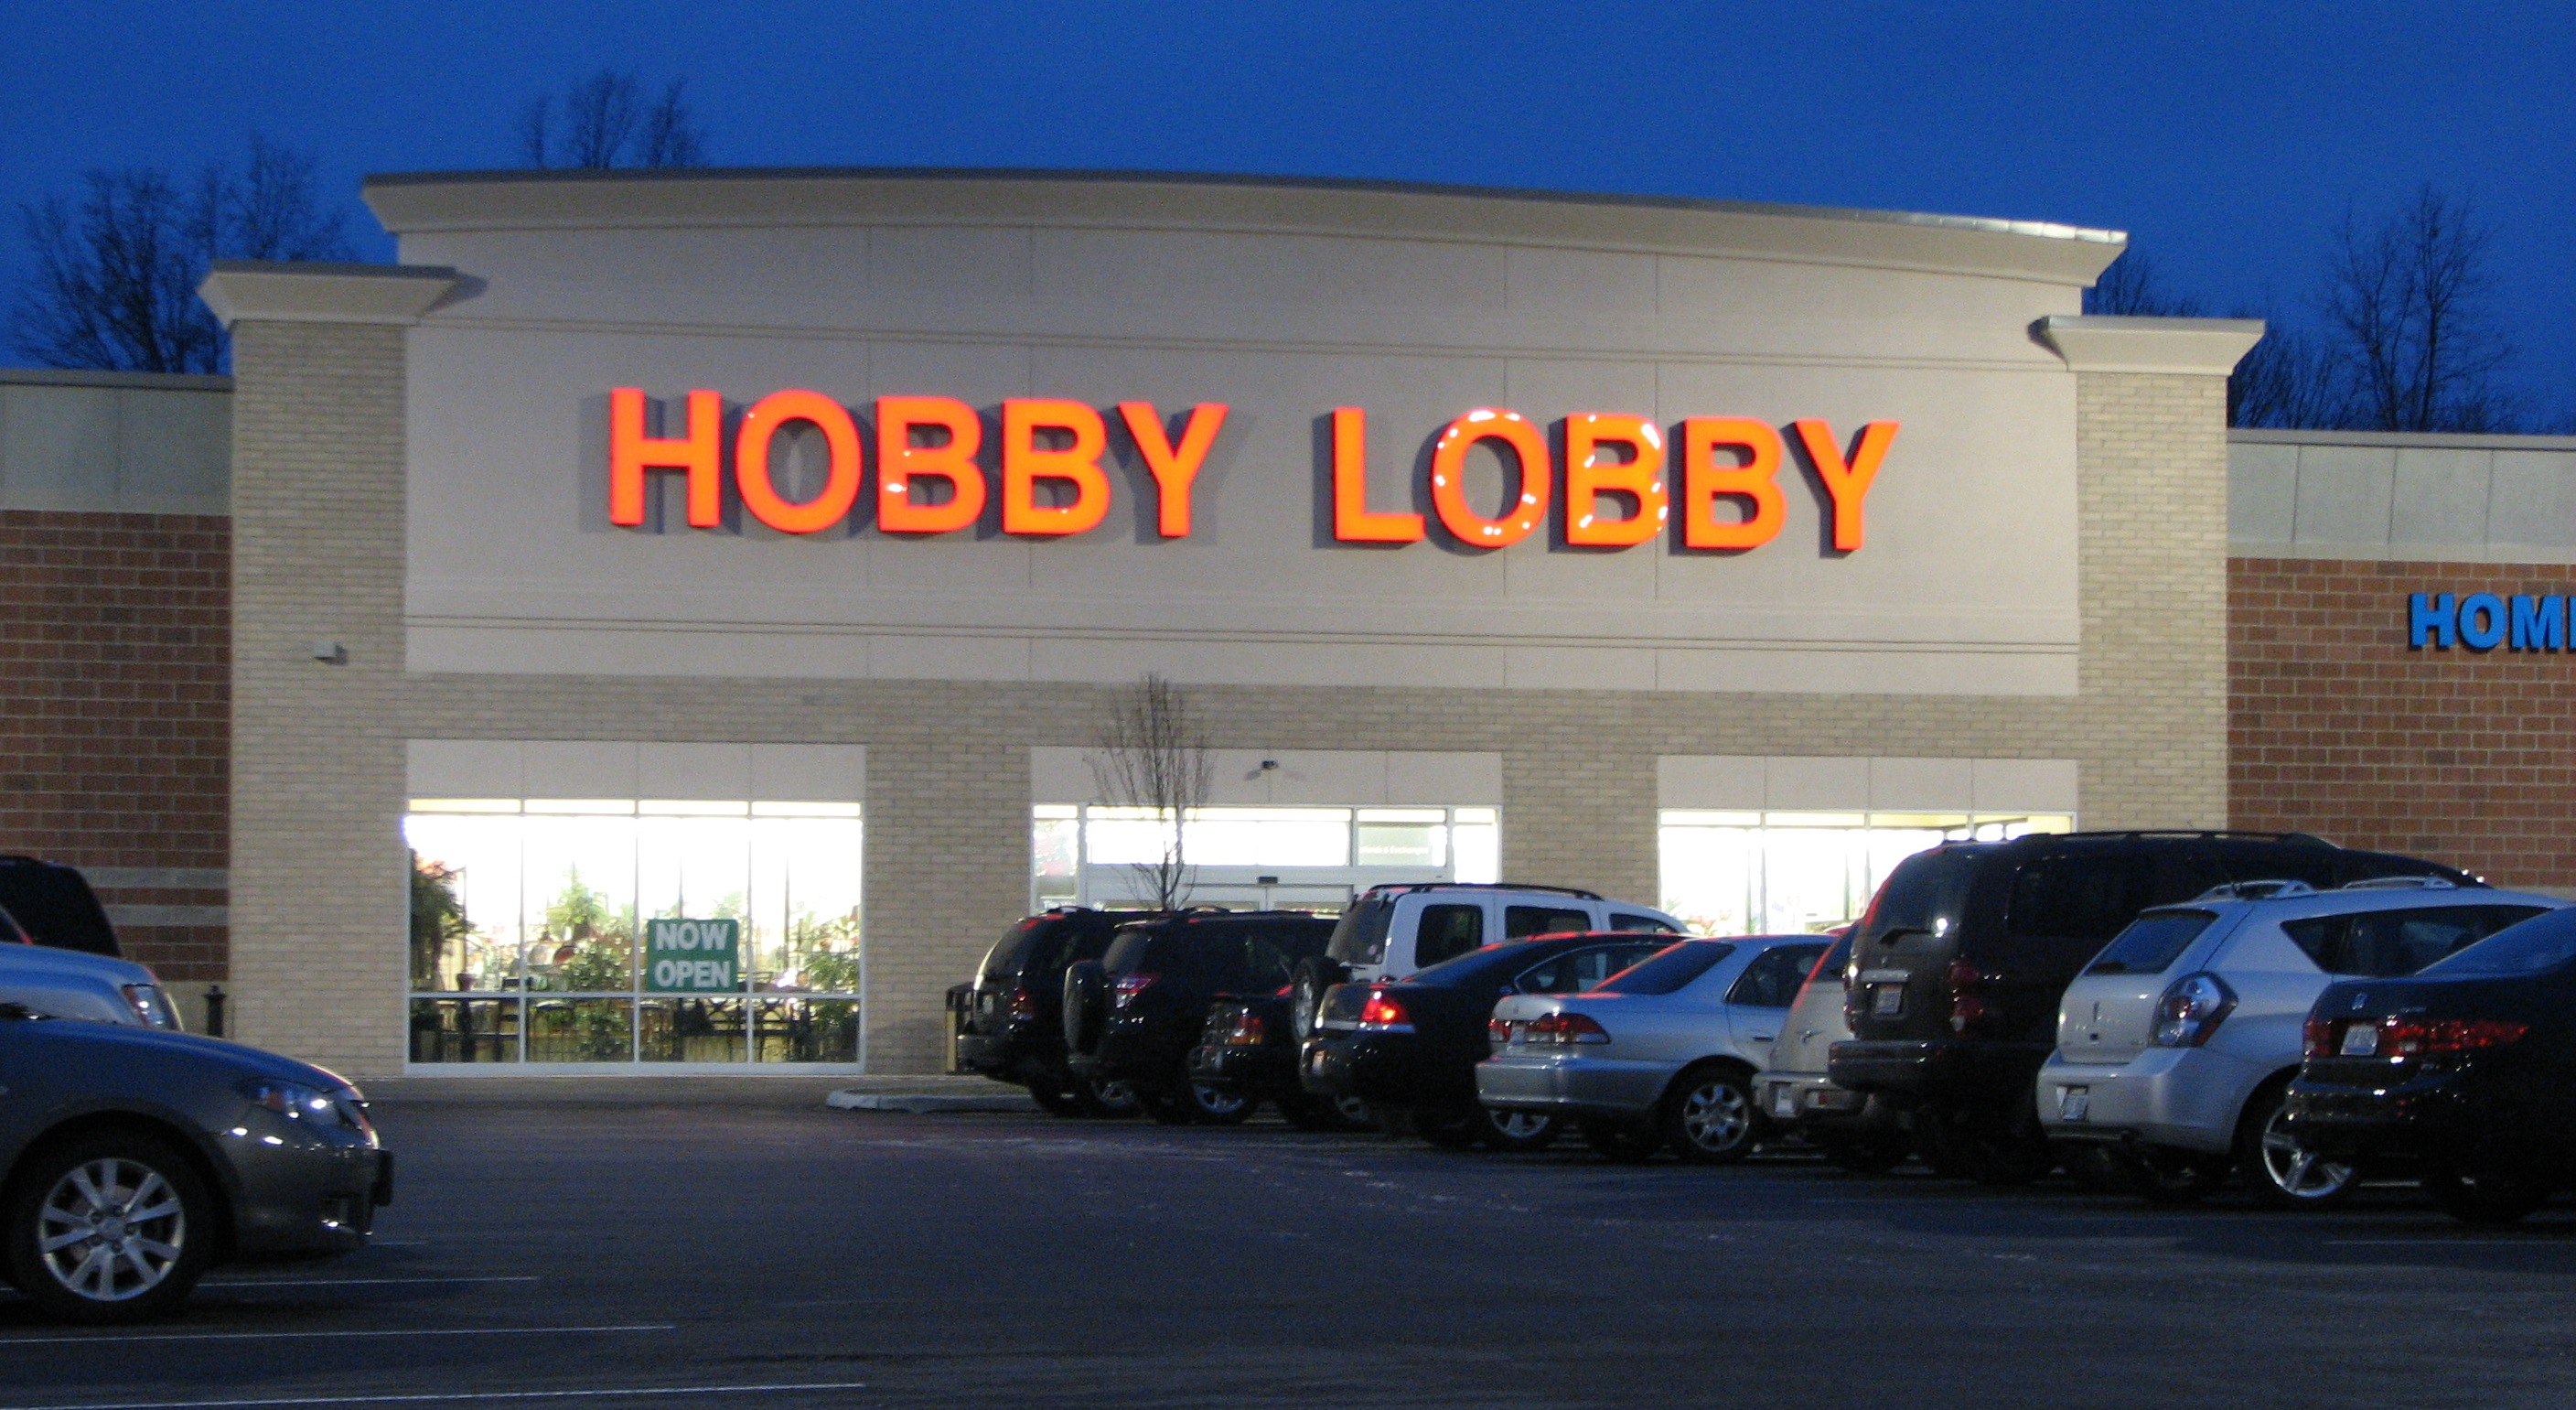 Best selling hobby lobby items boca raton news most reliable best selling hobby lobby items jeuxipadfo Image collections